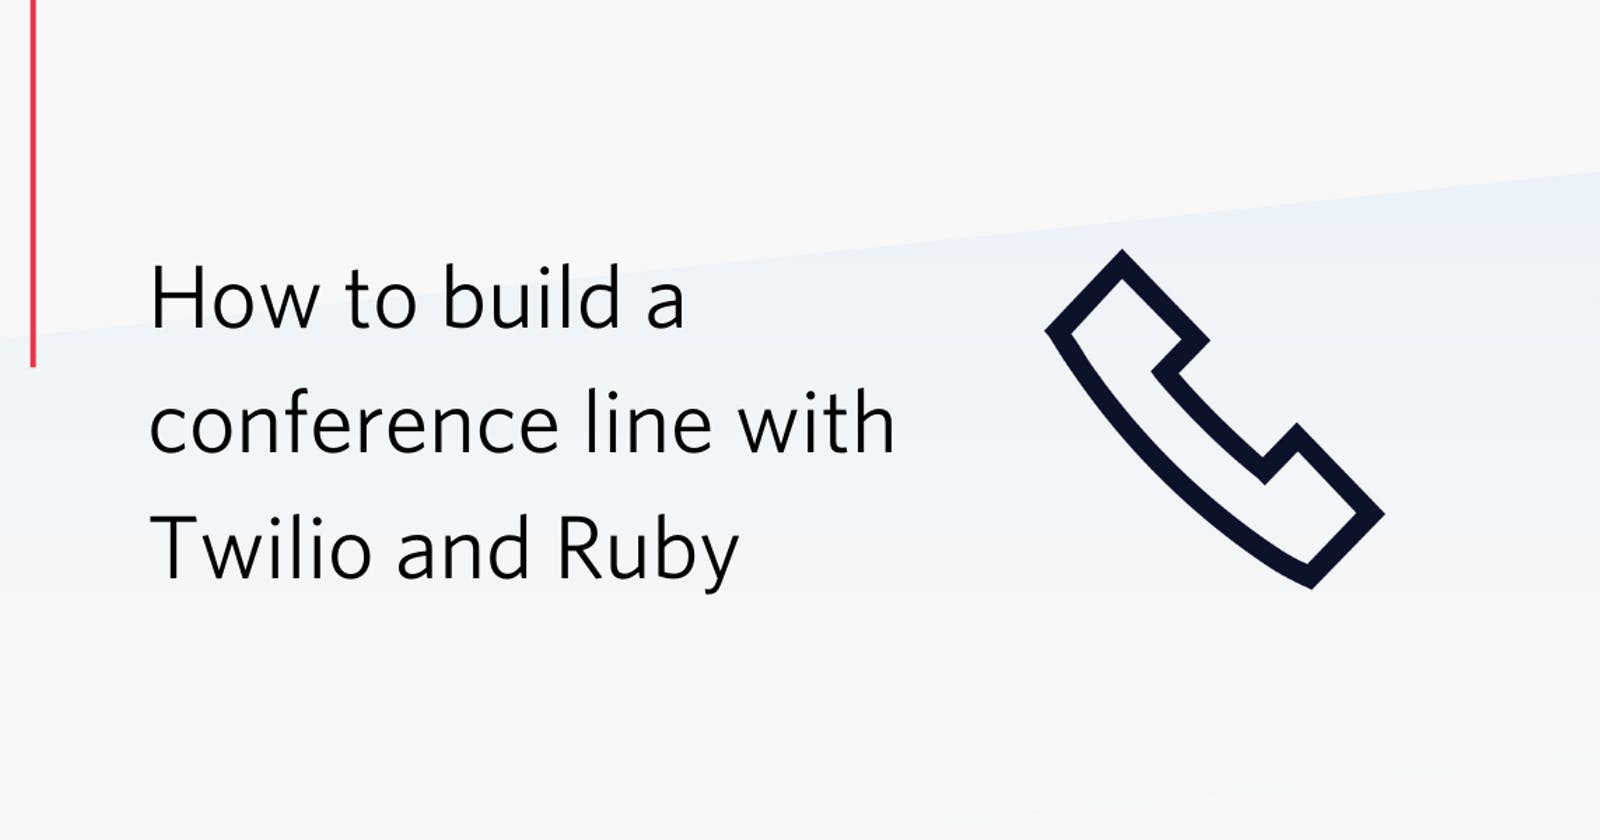 How to build a conference line with Twilio and Ruby